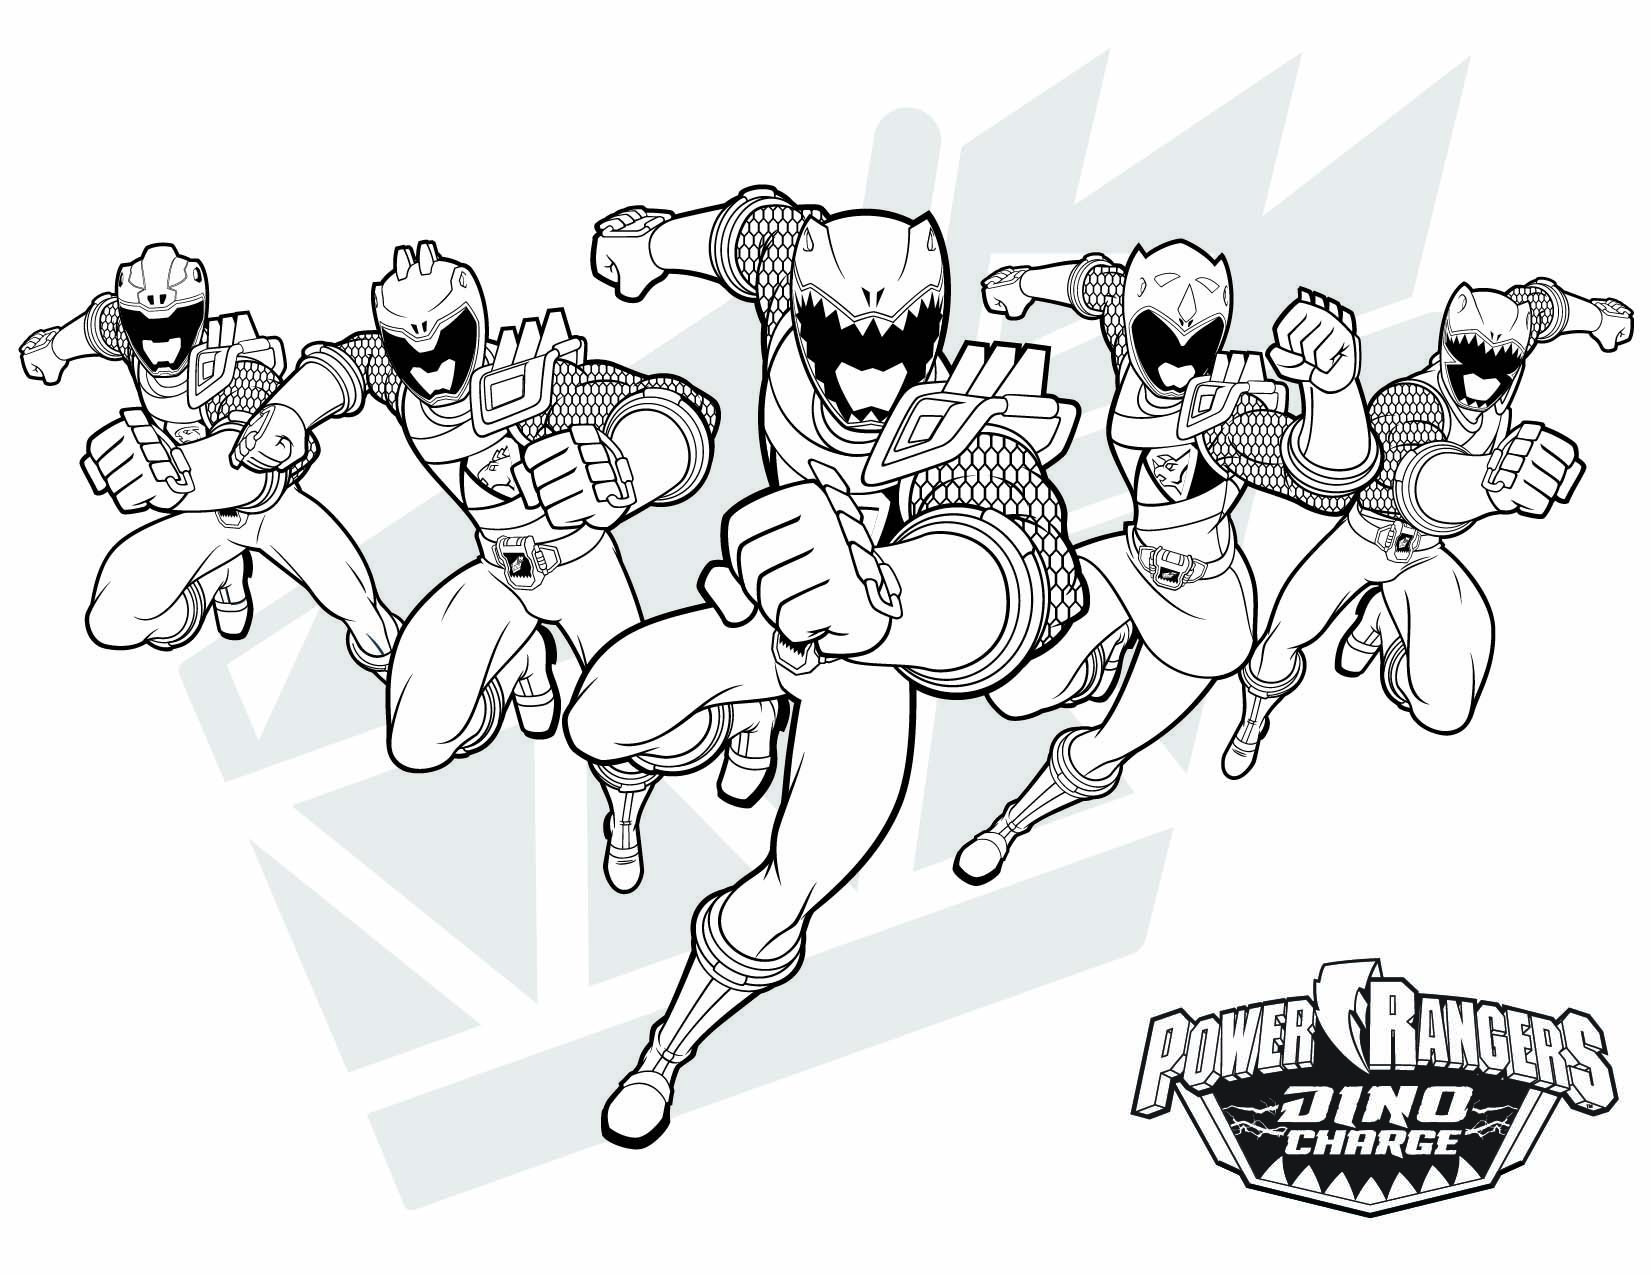 Dinosaurs coloring games online - The Dino Charge Rangers Download Them All Http Www Powerrangers